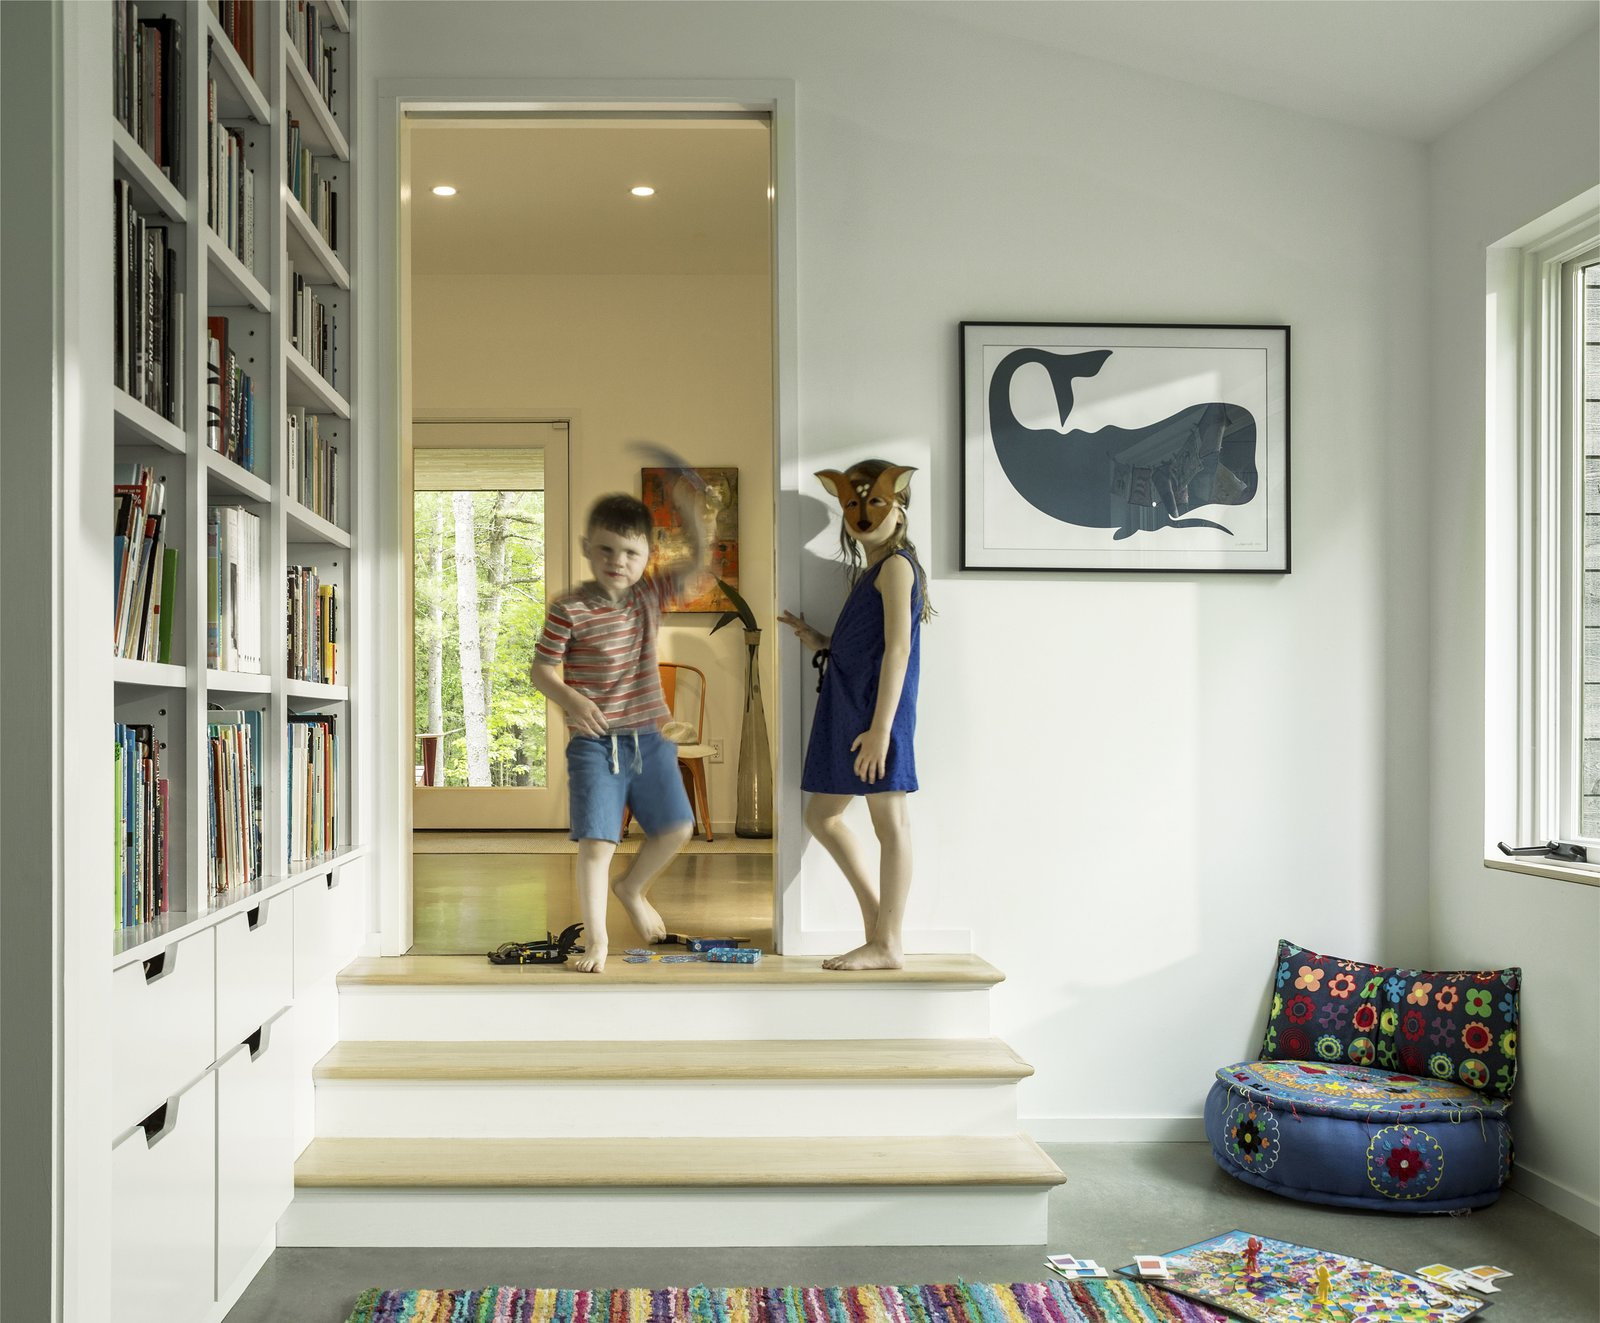 Kids Room, Playroom Room Type, Storage, and Bookcase Architect Elizabeth Herrmann's Knoll House project, Best Transitional category winner of 2017 Marvin Architects Challenge.    Knoll House